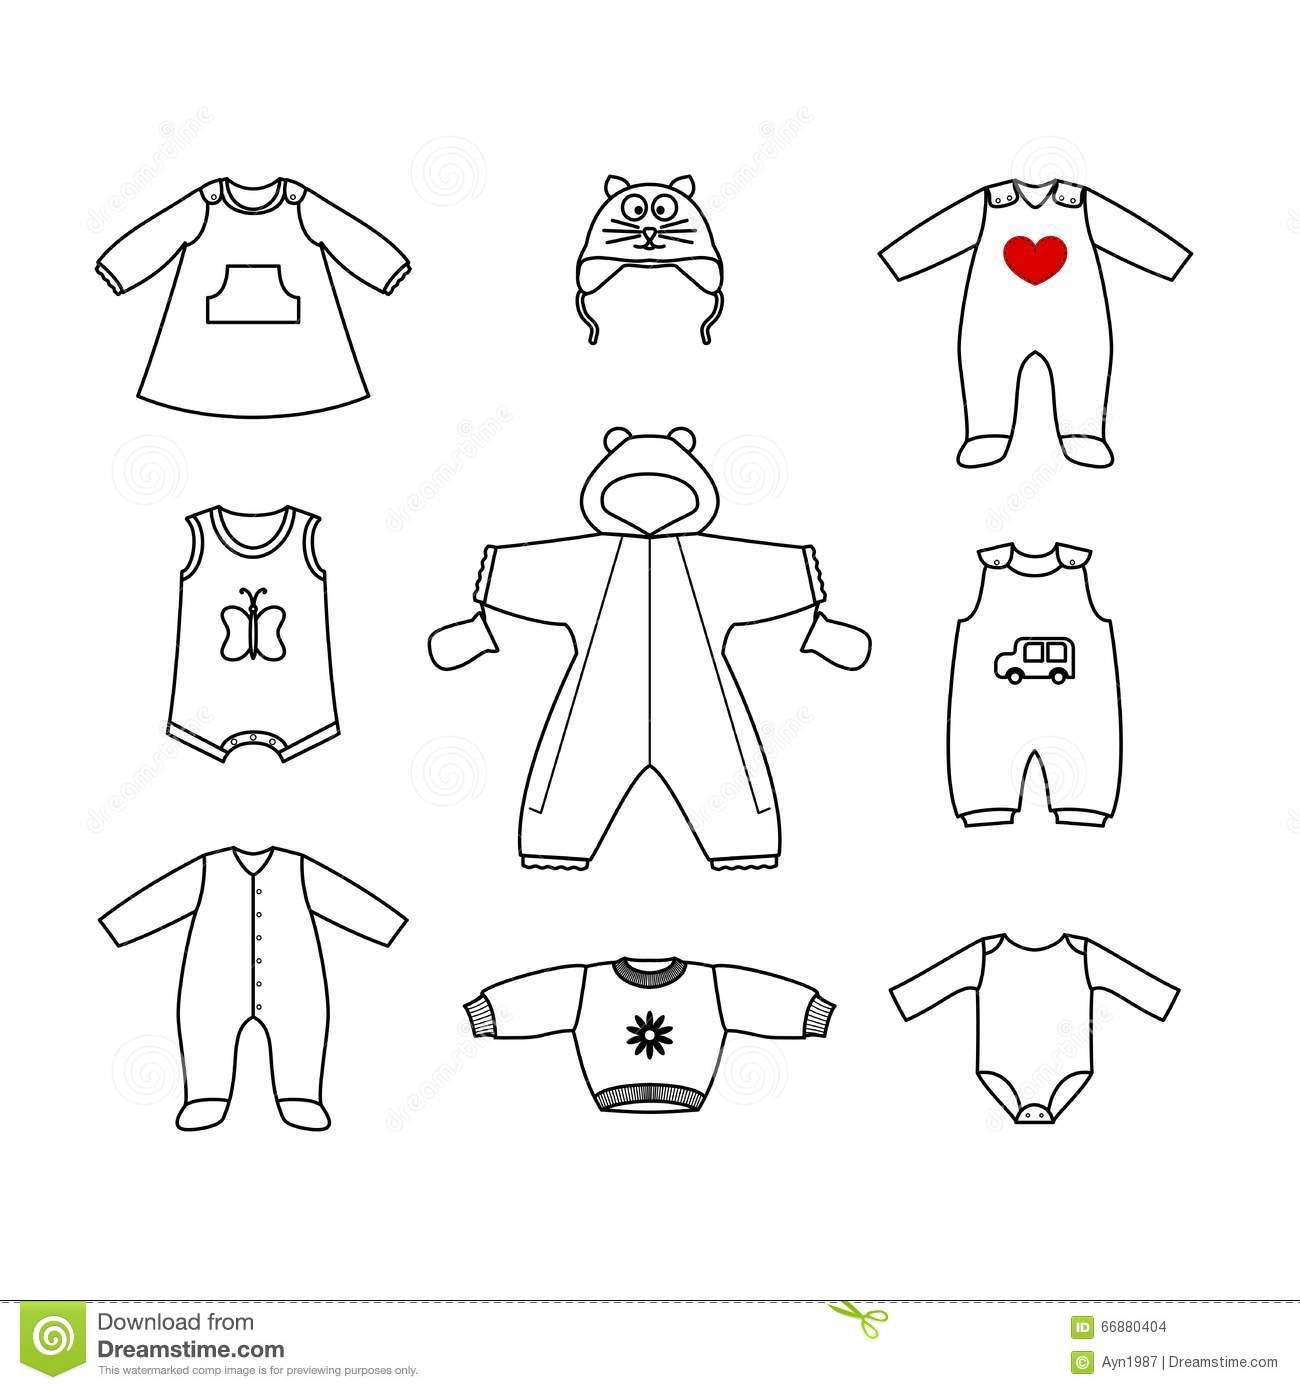 Set Of Cute Clothes For The Little Baby Collection Of Clothing In A Linear Style For The